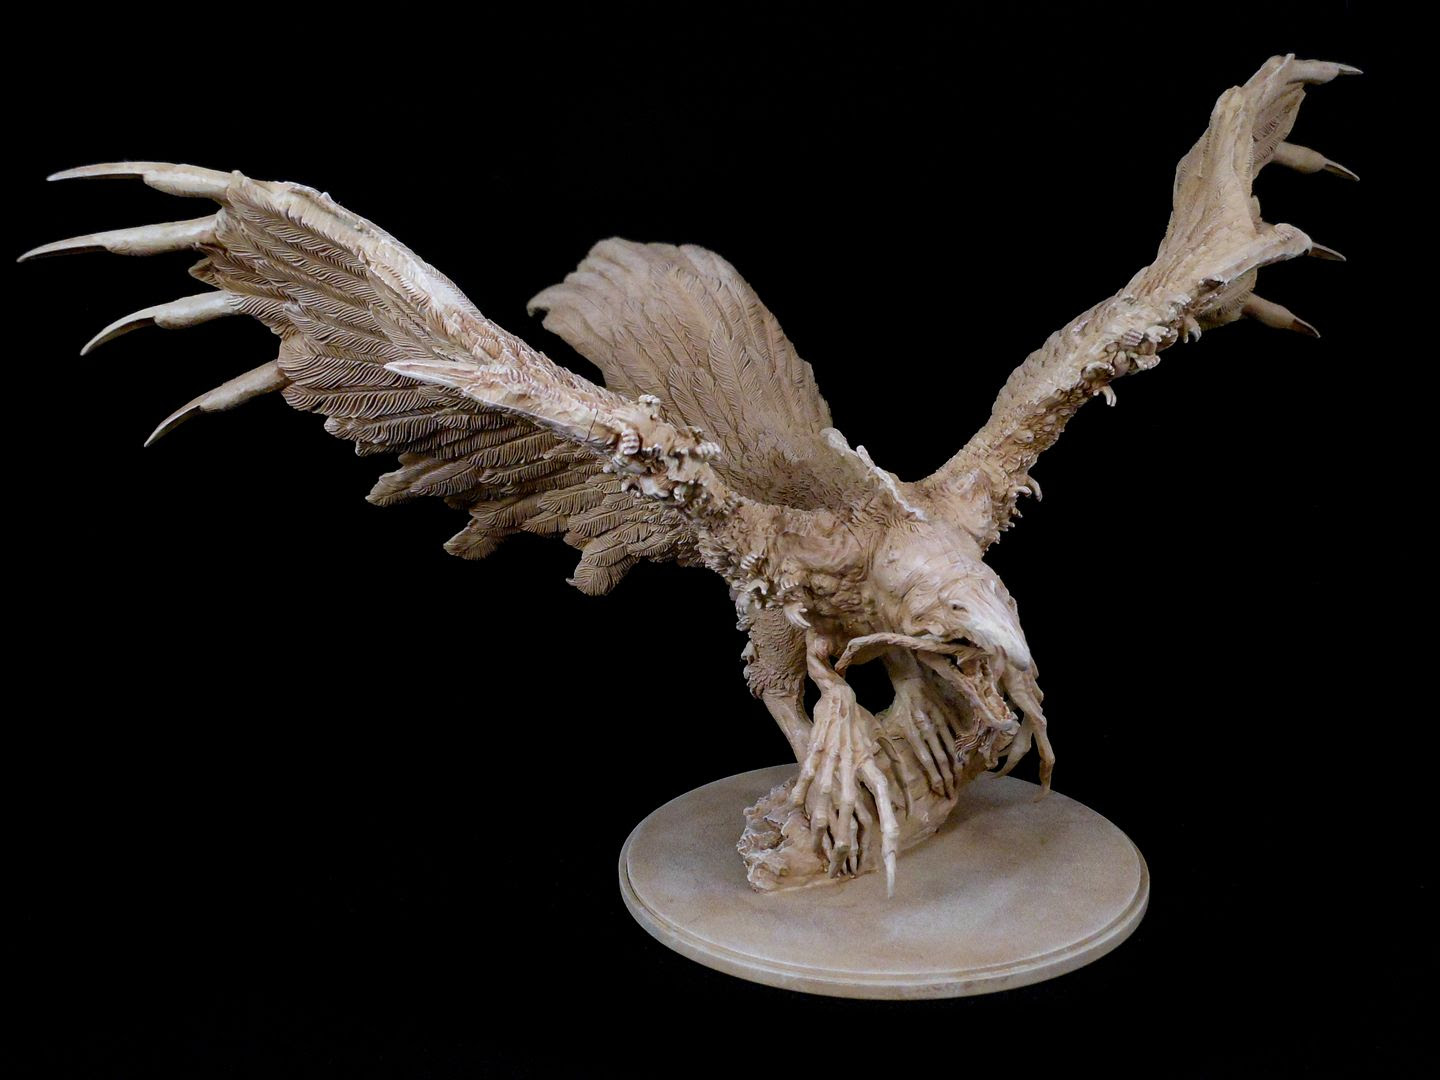 The phoenix from Kingdom Death: Monster, with drybrushing to bring out detail.